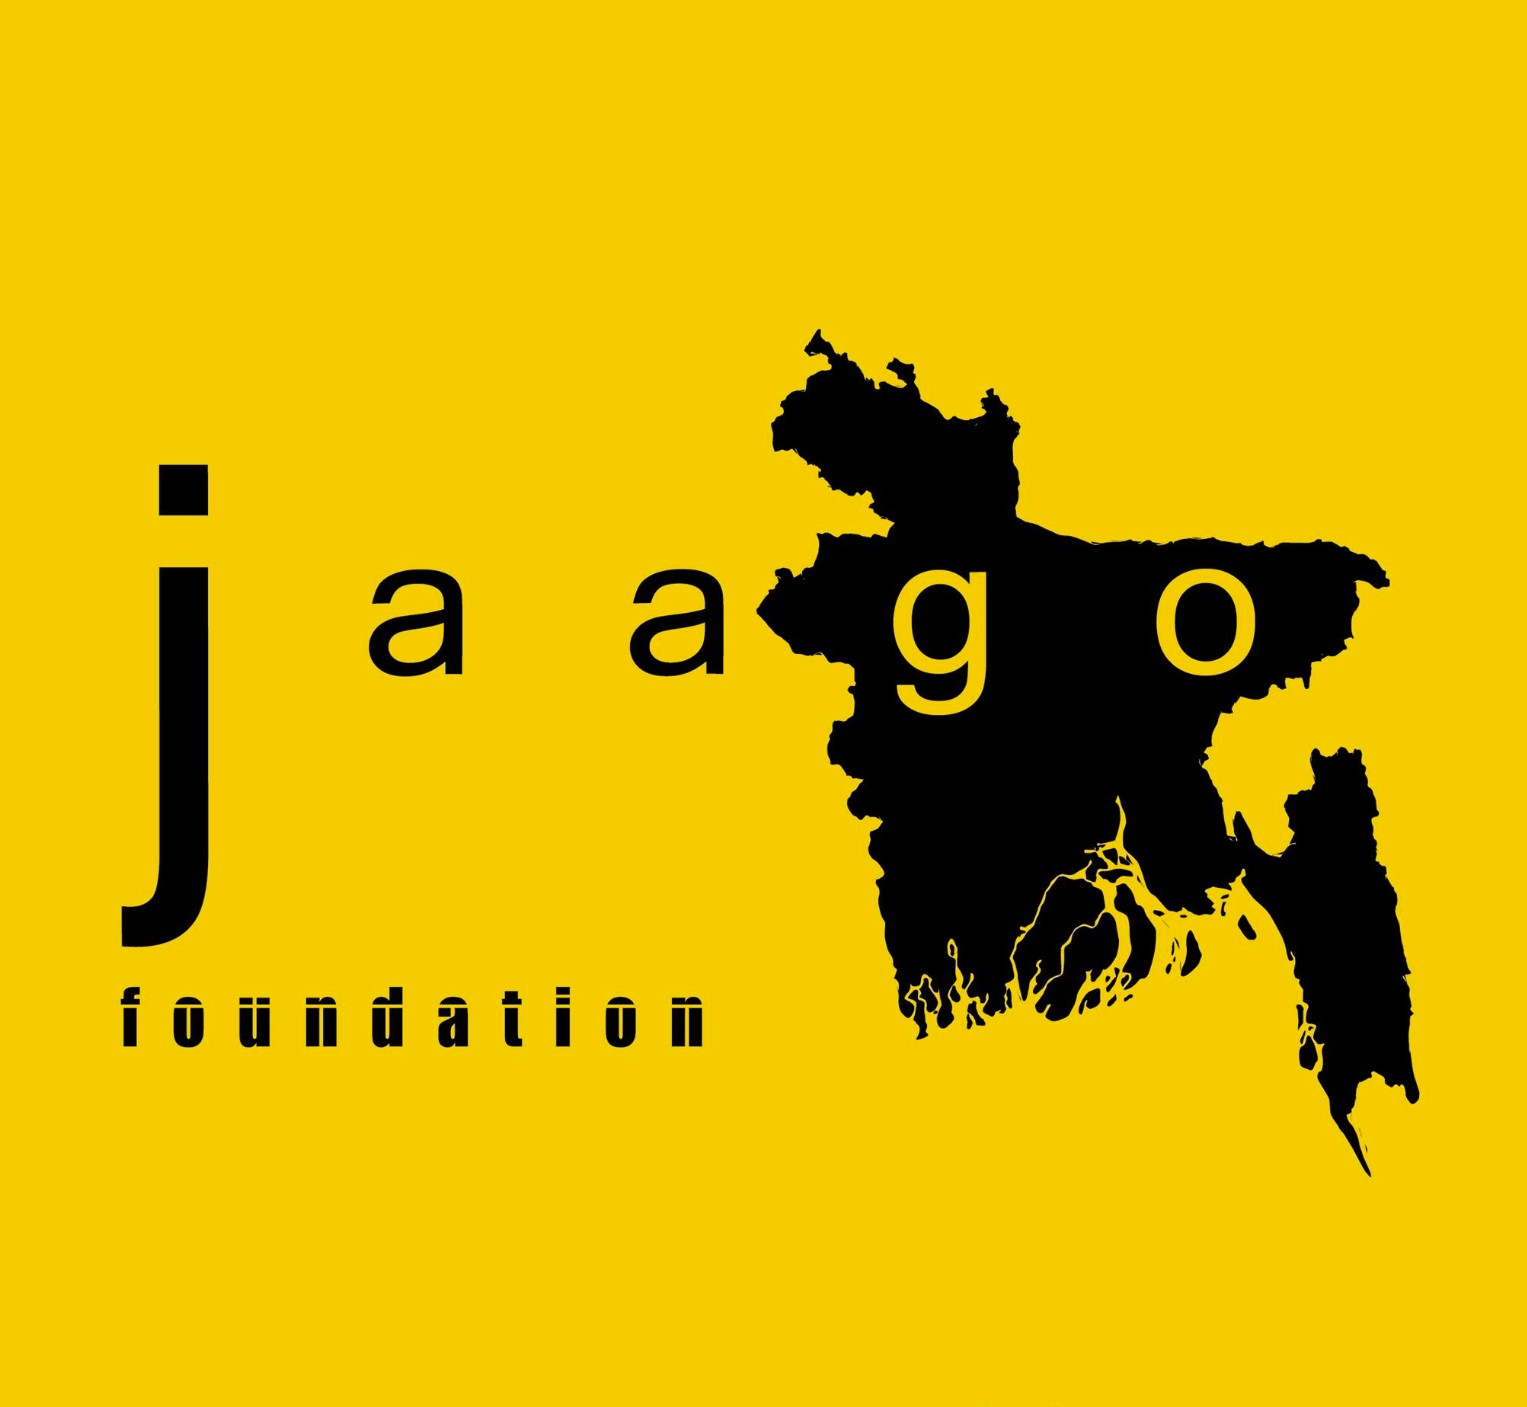 JAAGO Foundation through the Jolkona Foundation